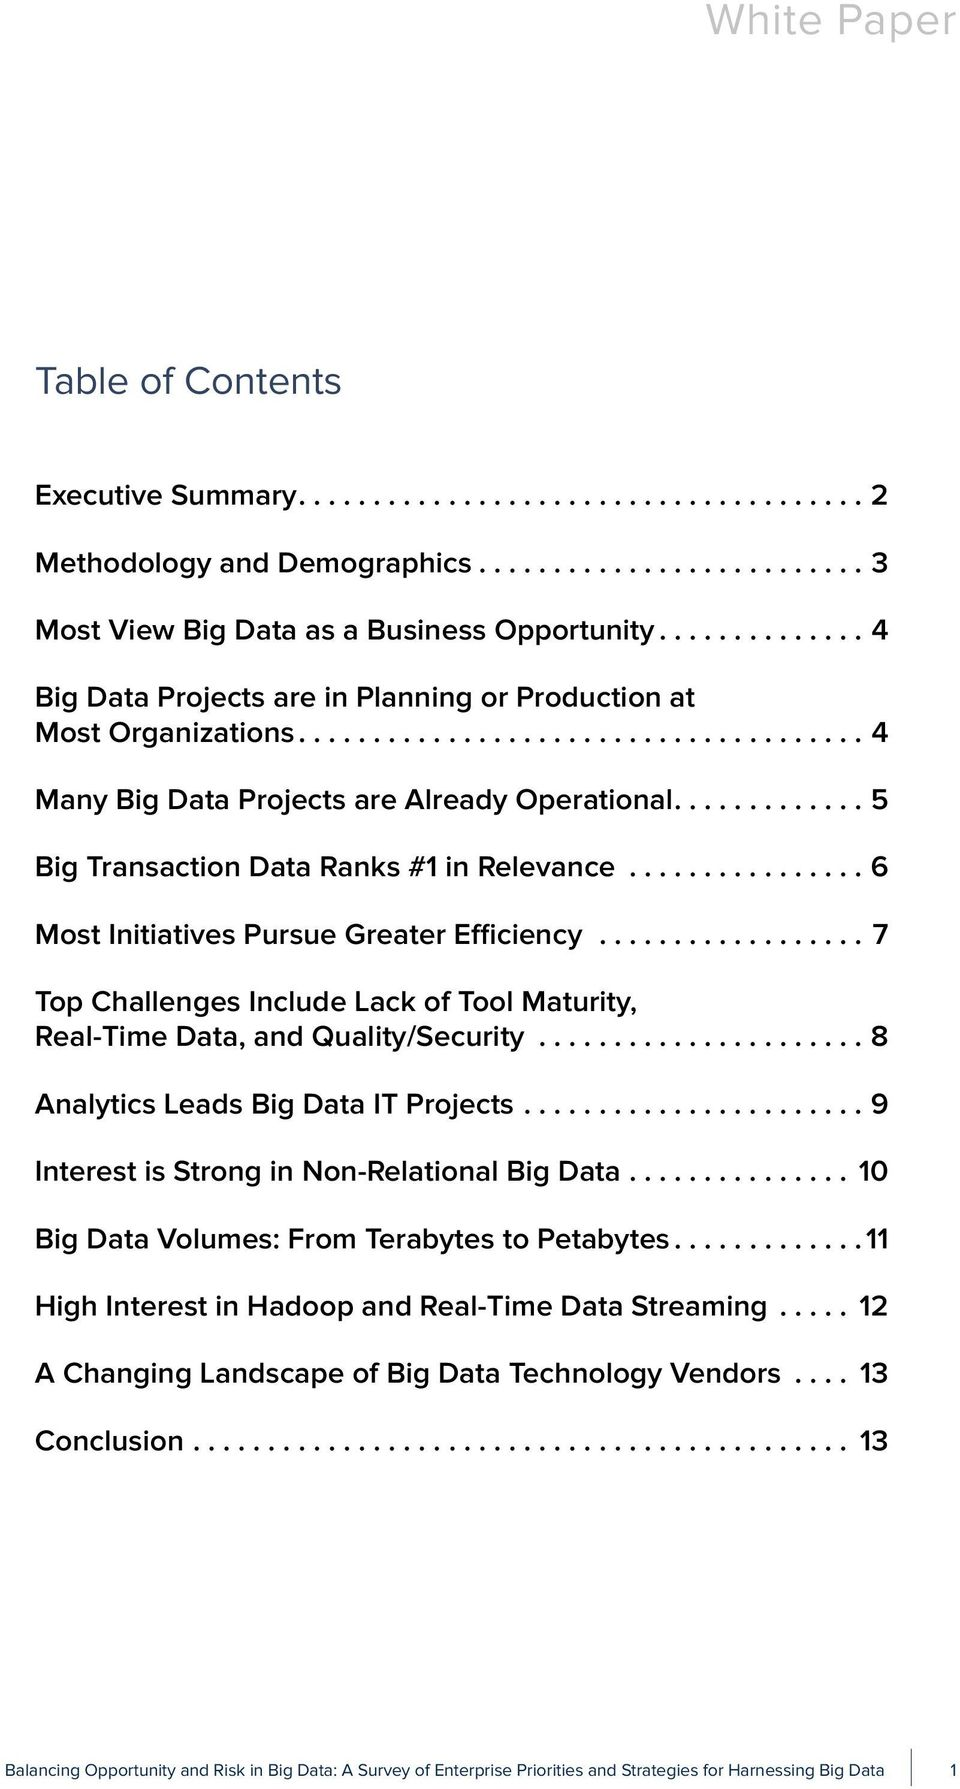 ..6 Most Initiatives Pursue Greater Efficiency...7 Top Challenges Include Lack of Tool Maturity, Real-Time Data, and Quality/Security...8 Analytics Leads Big Data IT Projects.